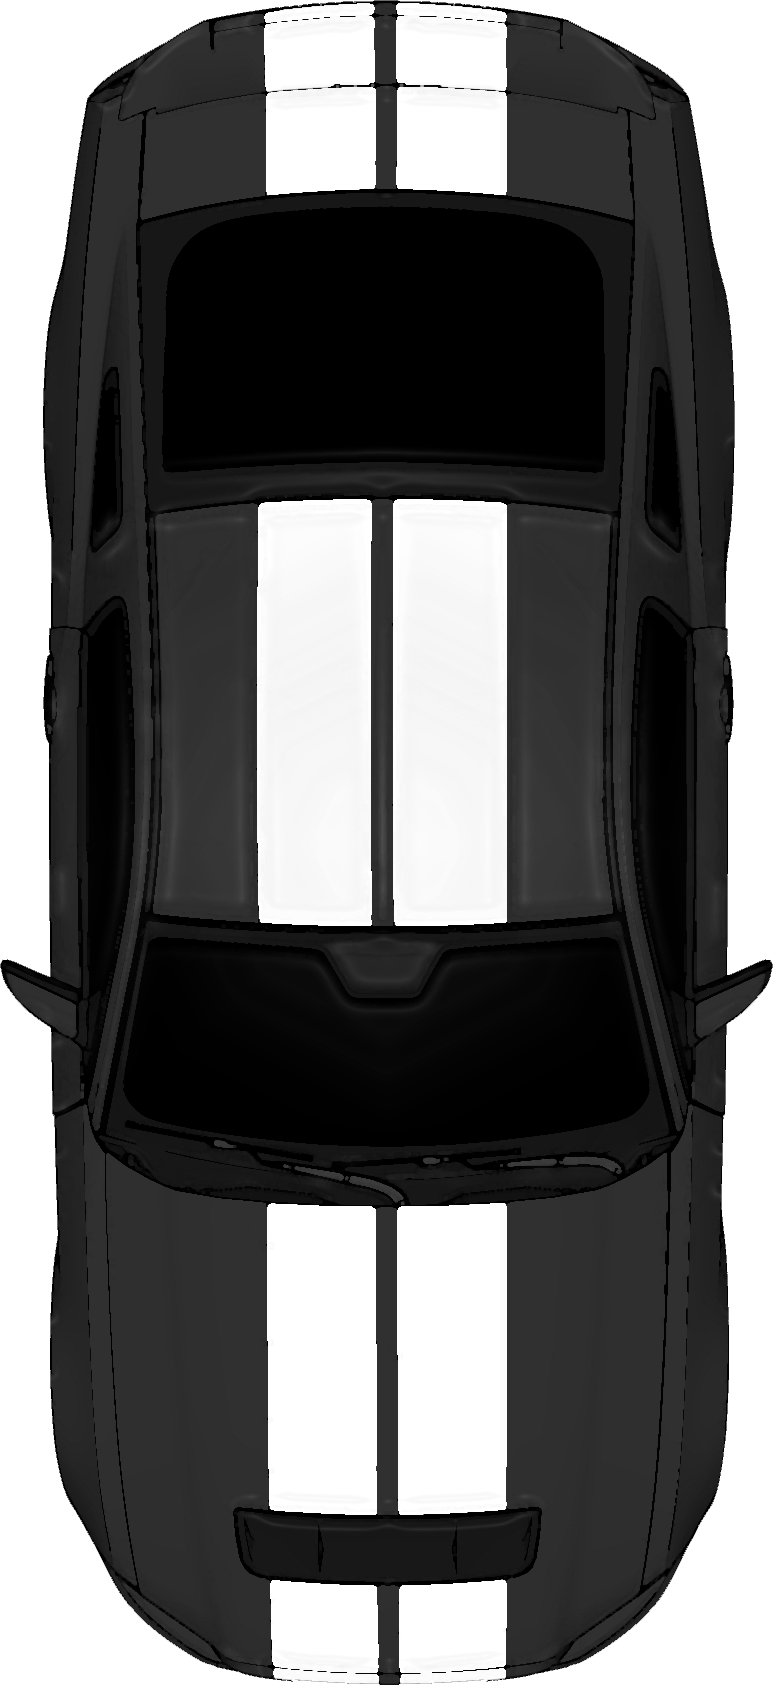 Cars Top View Png, Transparent PNG, png collections at dlf.pt